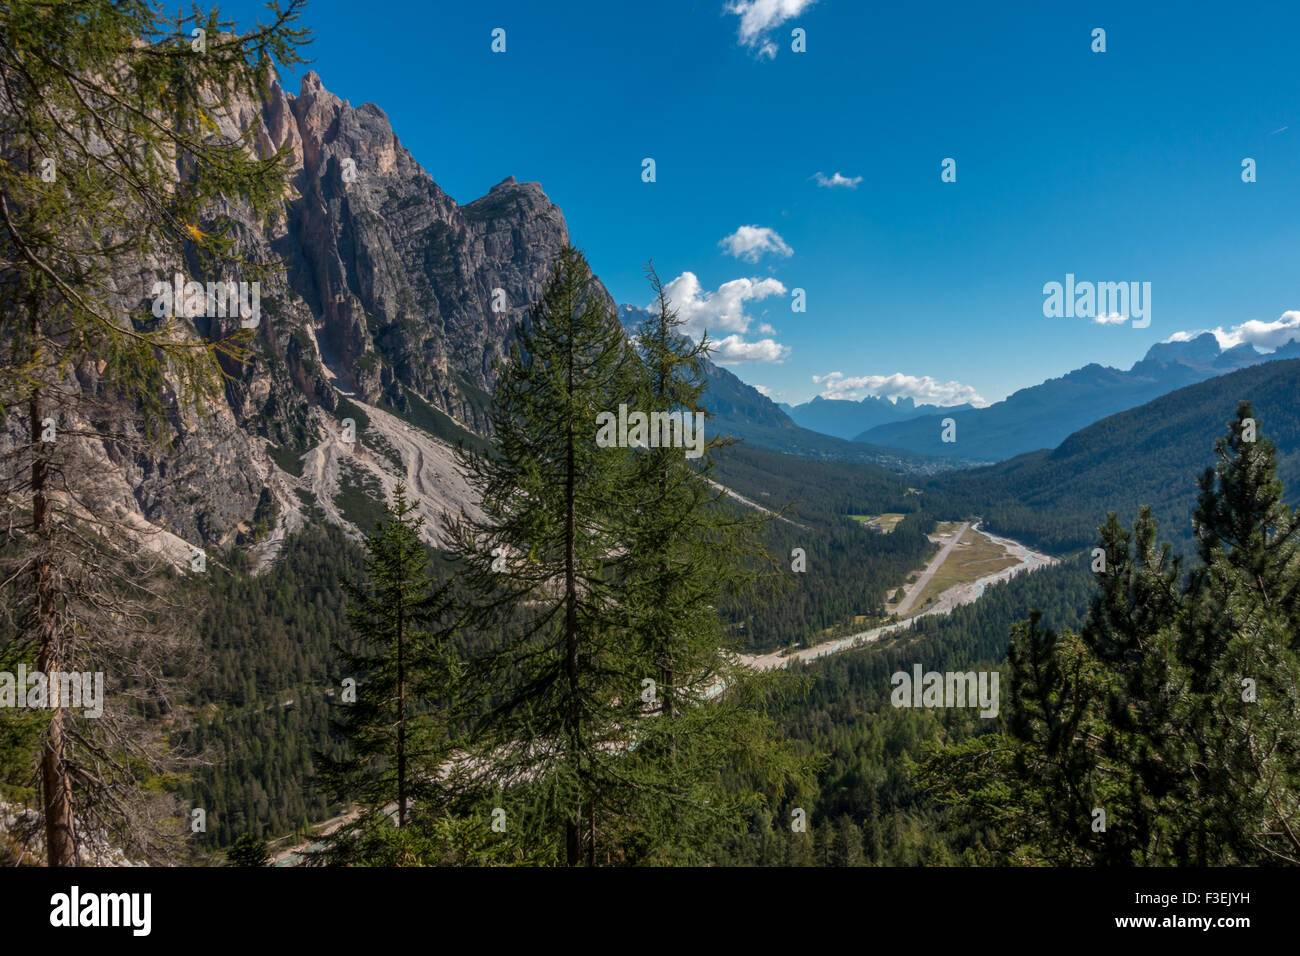 Looking towards Cortina in the valley from the descent path from the Ettore Bovero via ferrata on Col Rosa,  (Dolomites, - Stock Image